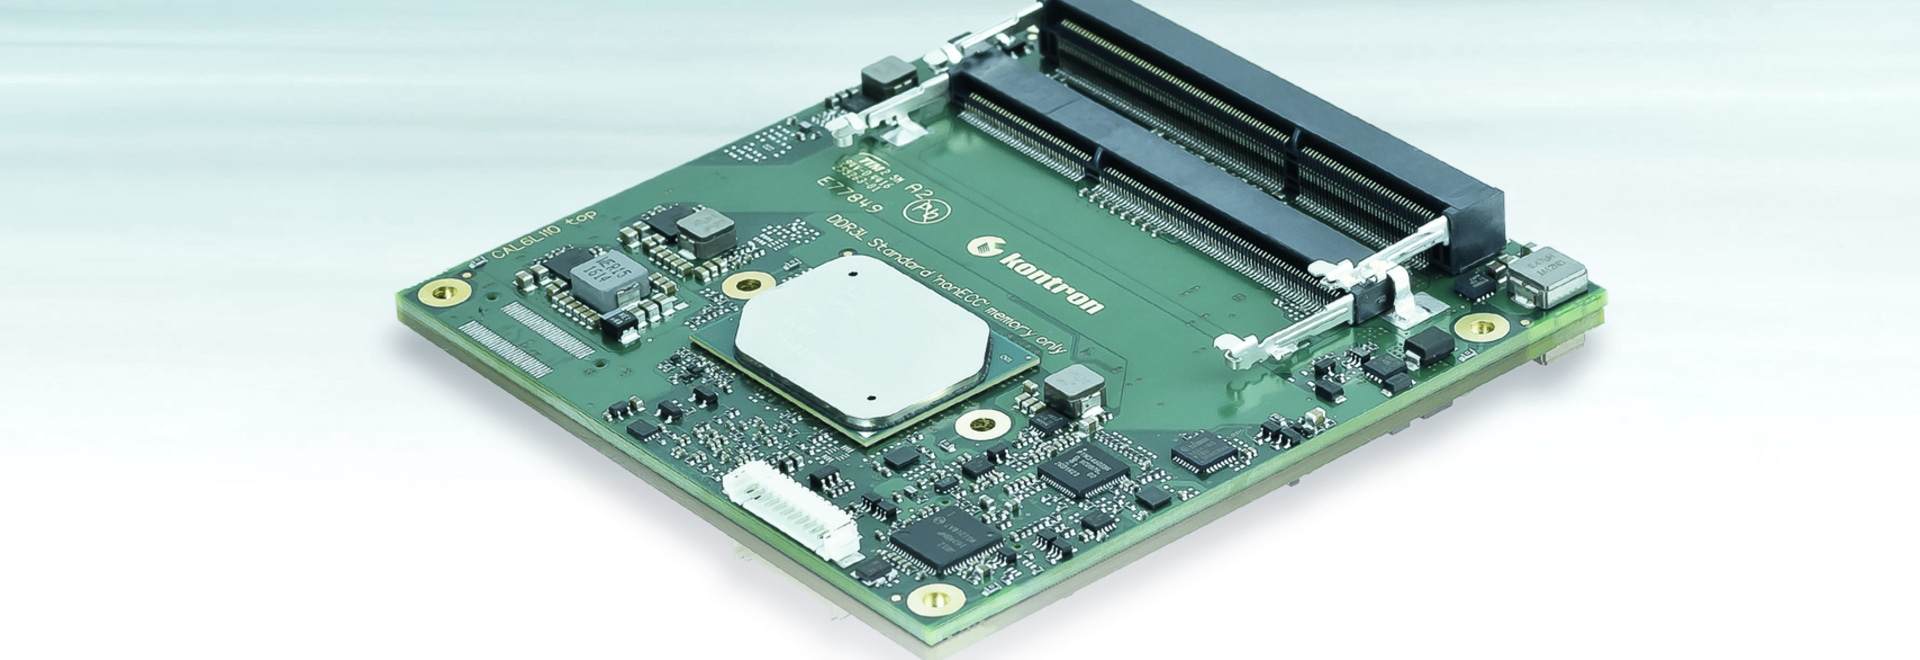 Kontron presents COM Express® compact Computer-on-Module featuring latest generation Intel® Atom™ E3900 processor series